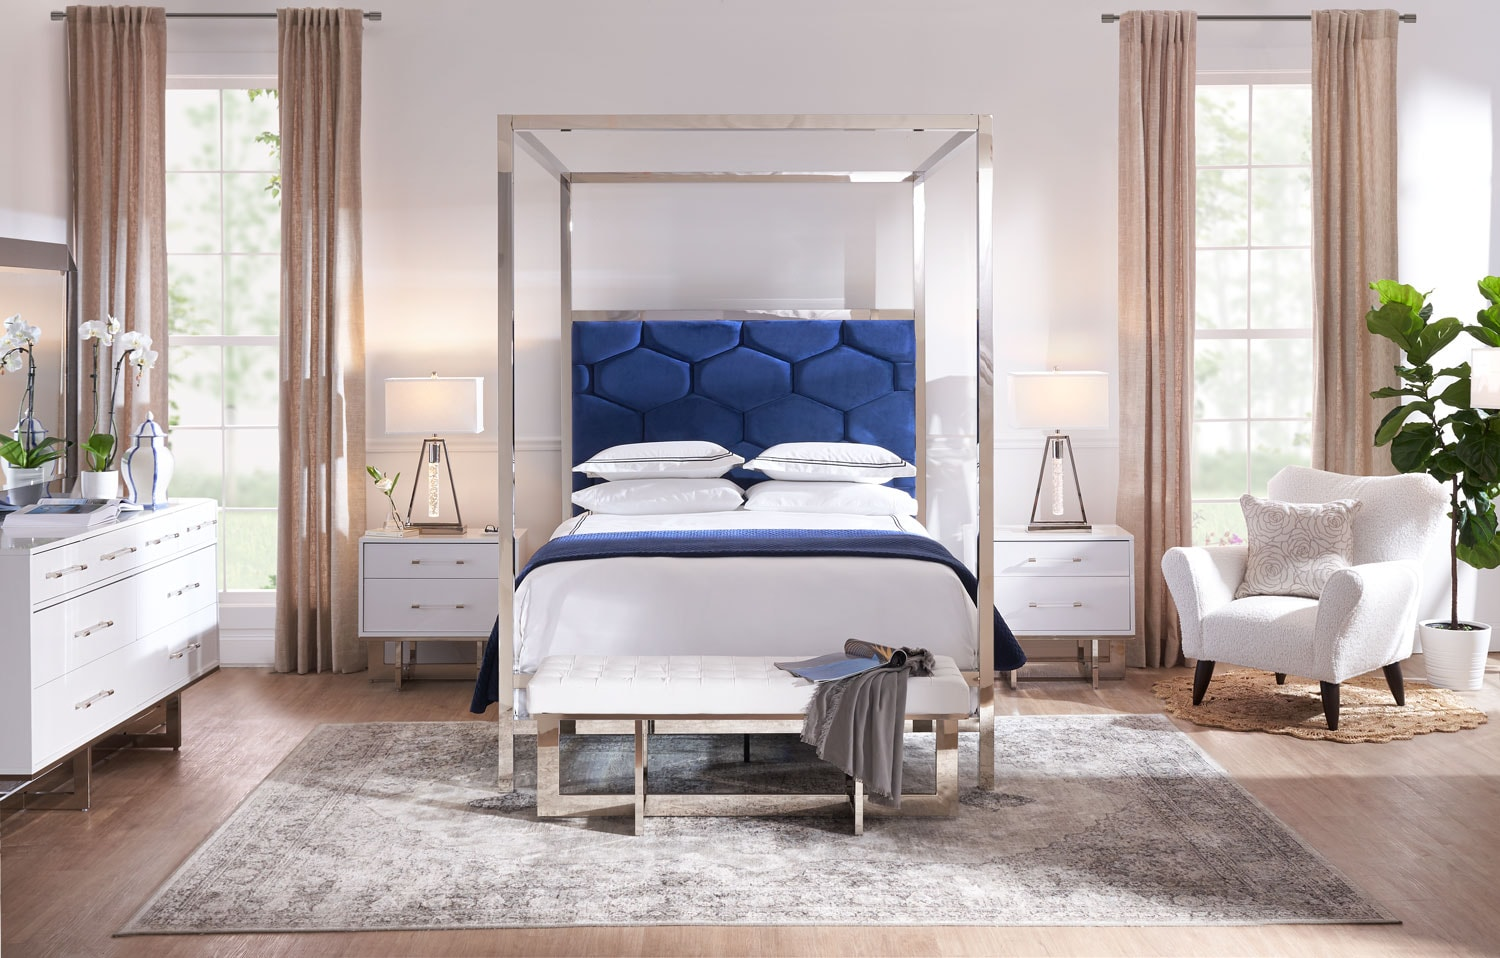 The Concerto Bedroom Collection